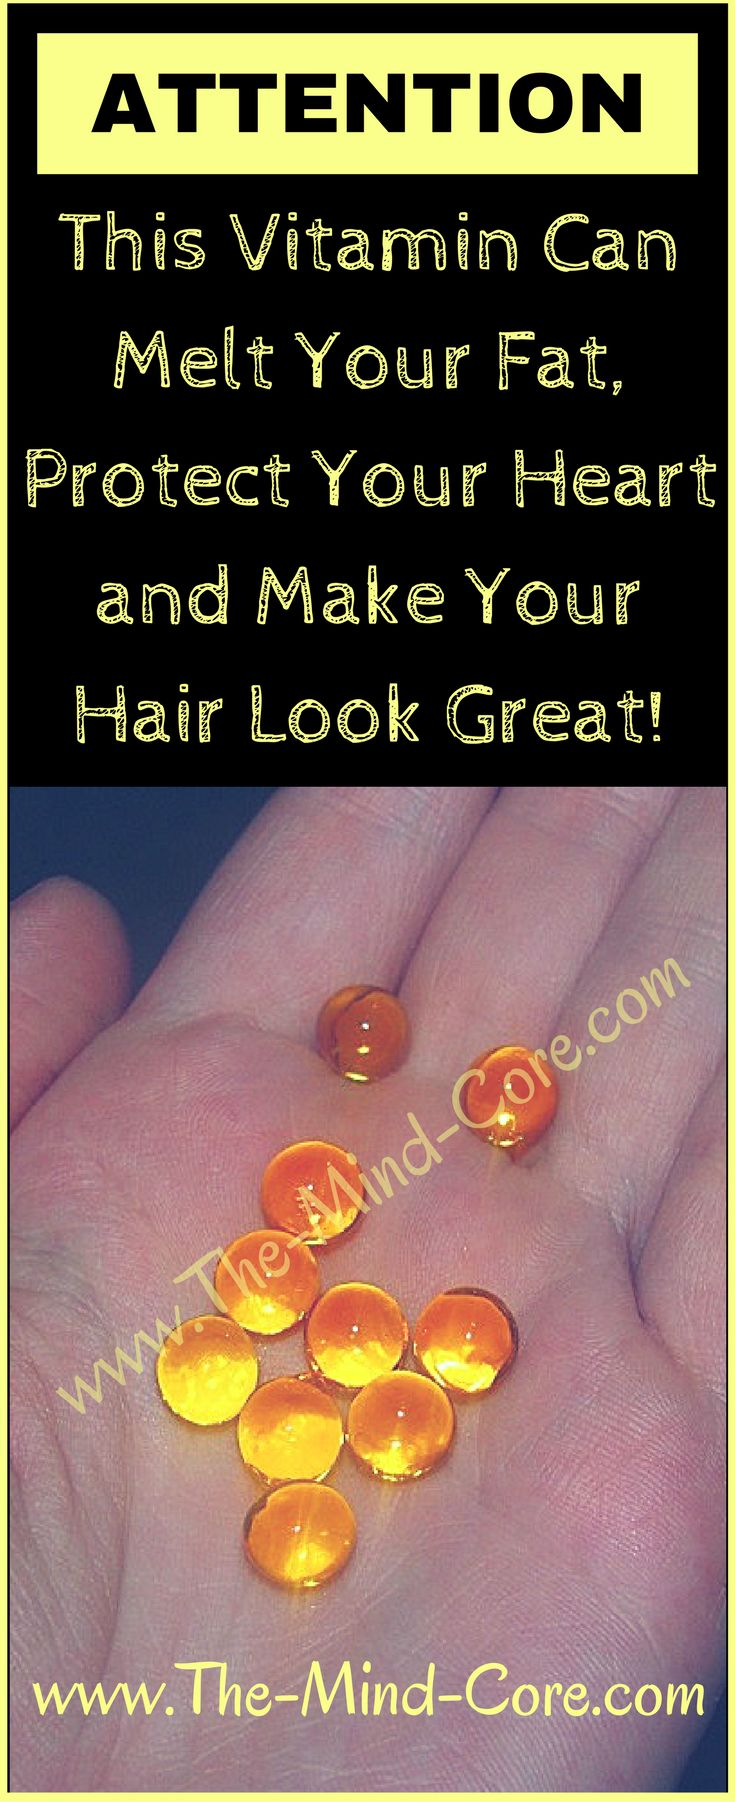 ATTENTION: Melt Fat, Protect Your Heart and Make Your Hair Look Great With This Vitamin!!!